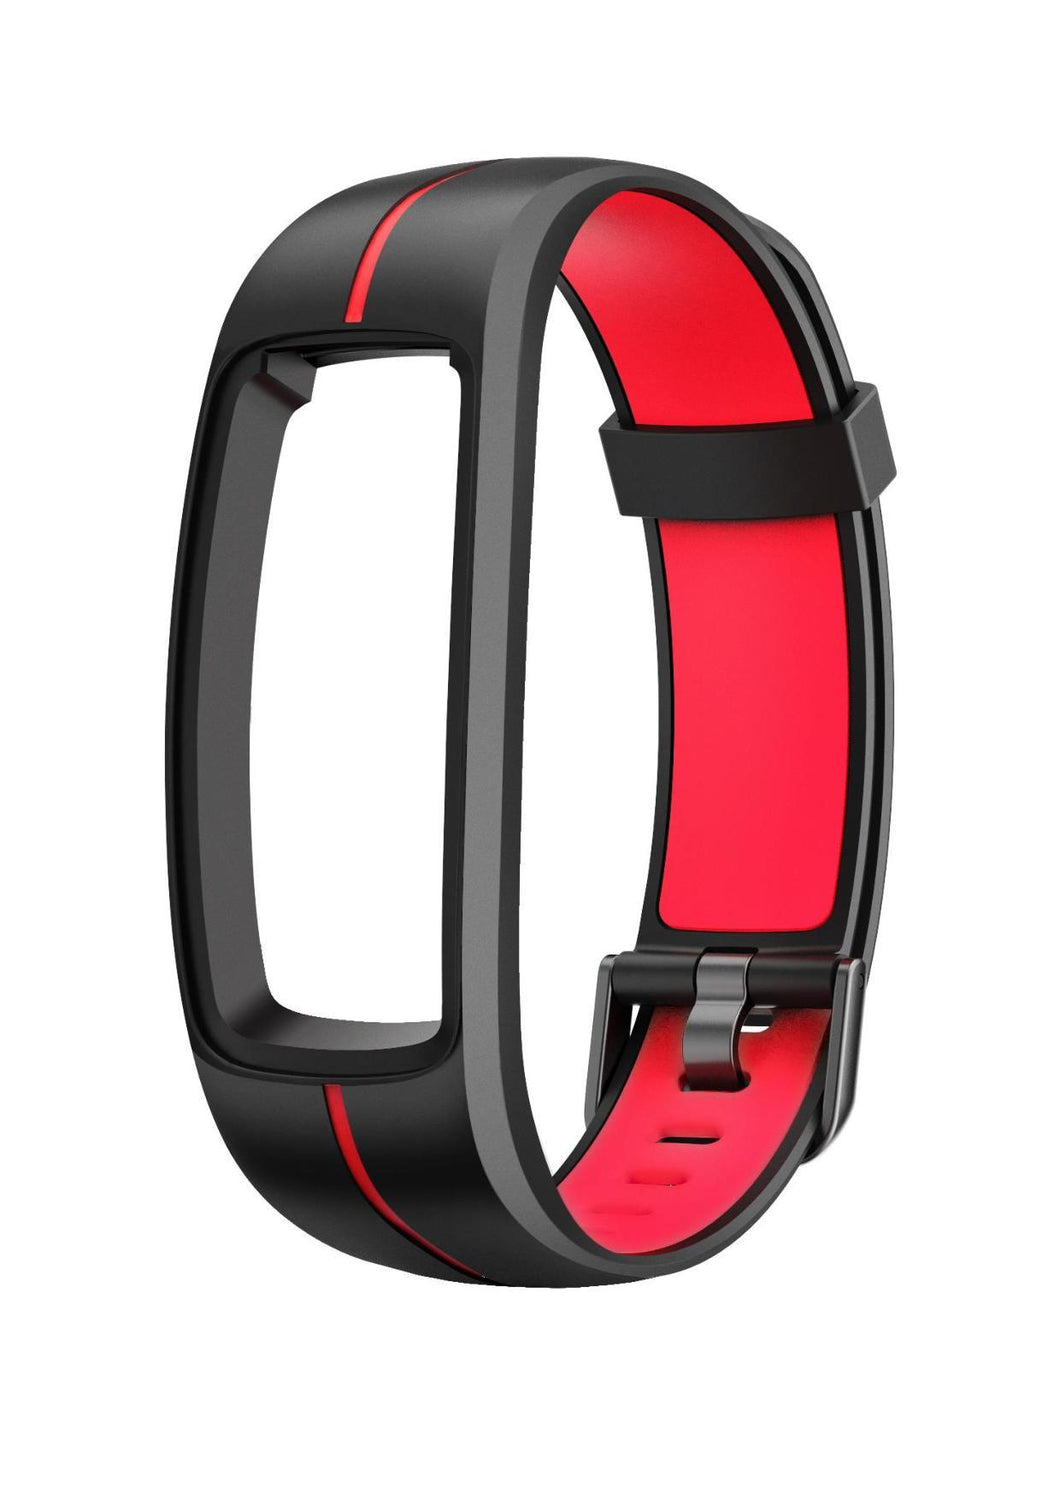 Stride - Interchangeable Smartwatch Band - Black / Red band for CAC-111-M07